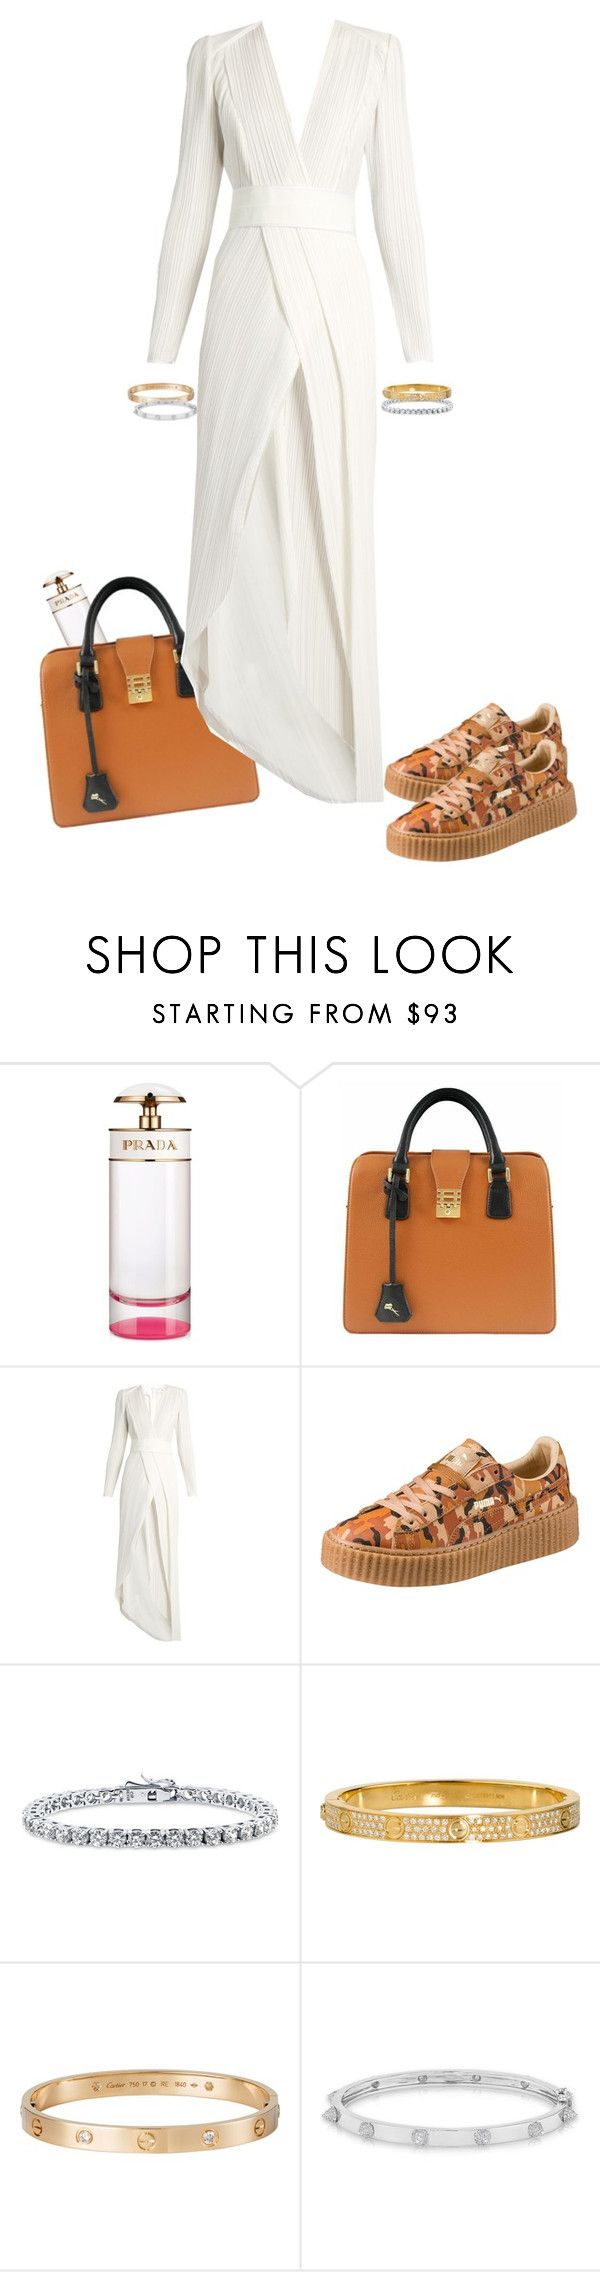 """""""Drake - pound cake"""" by minniemauus ❤ liked on Polyvore featuring Prada, Florian London, Galvan, Puma, BERRICLE, Cartier and Anne Sisteron"""